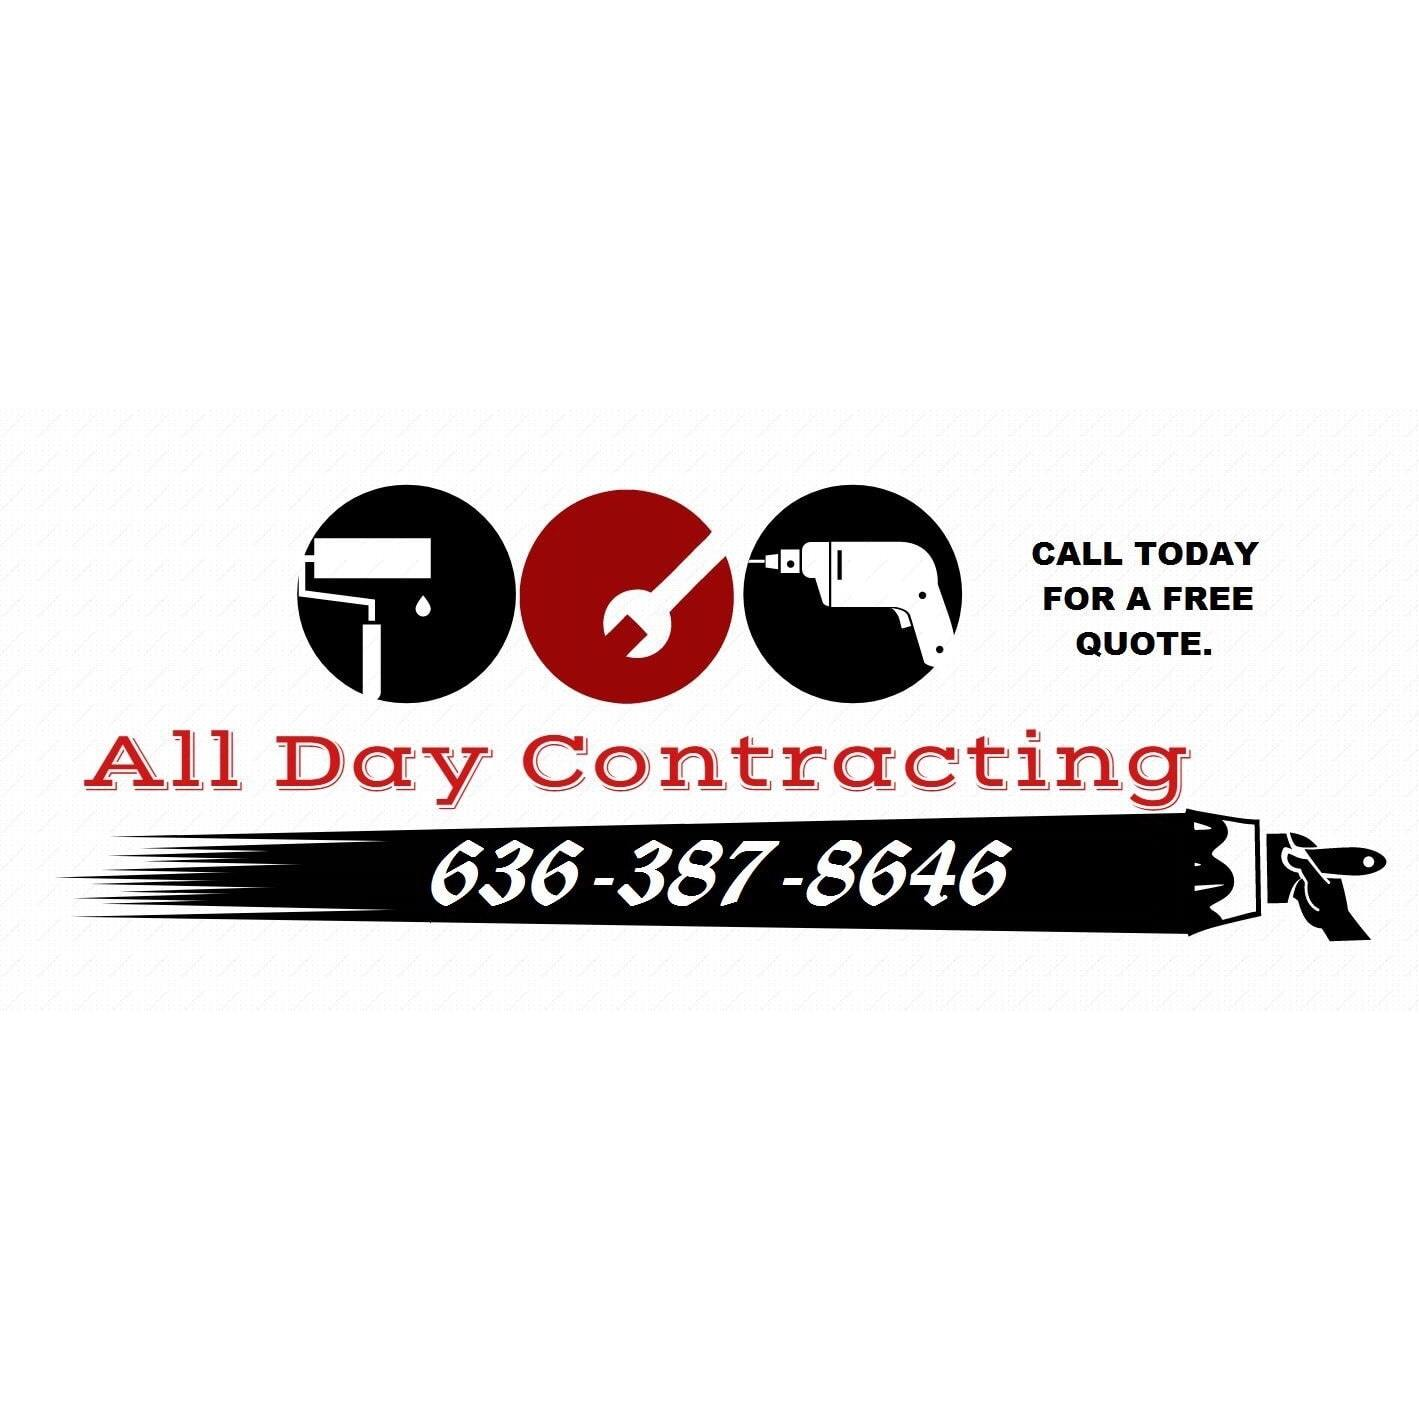 All Day Contracting